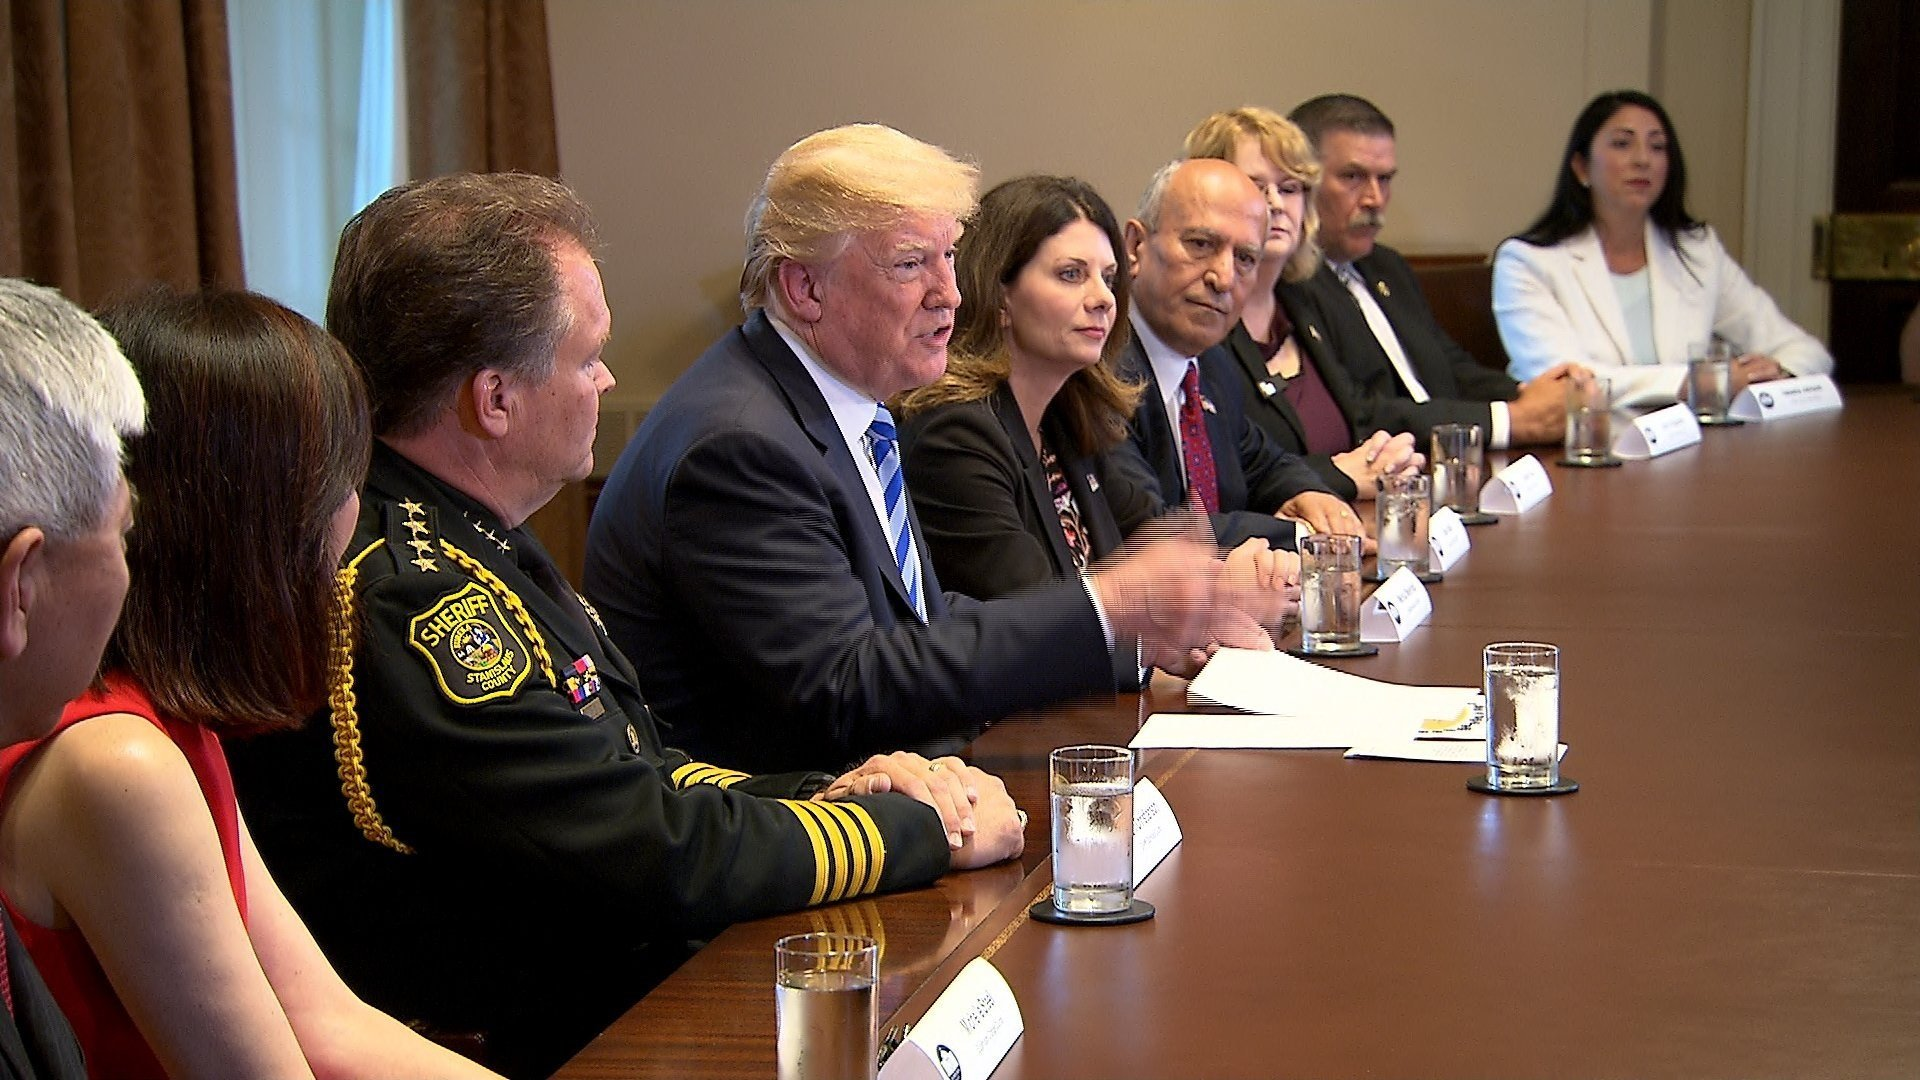 President Donald Trump blamed Democrats for immigration laws that force federal immigration agents to break up families during a roundtable to discuss California sanctuary state policies.